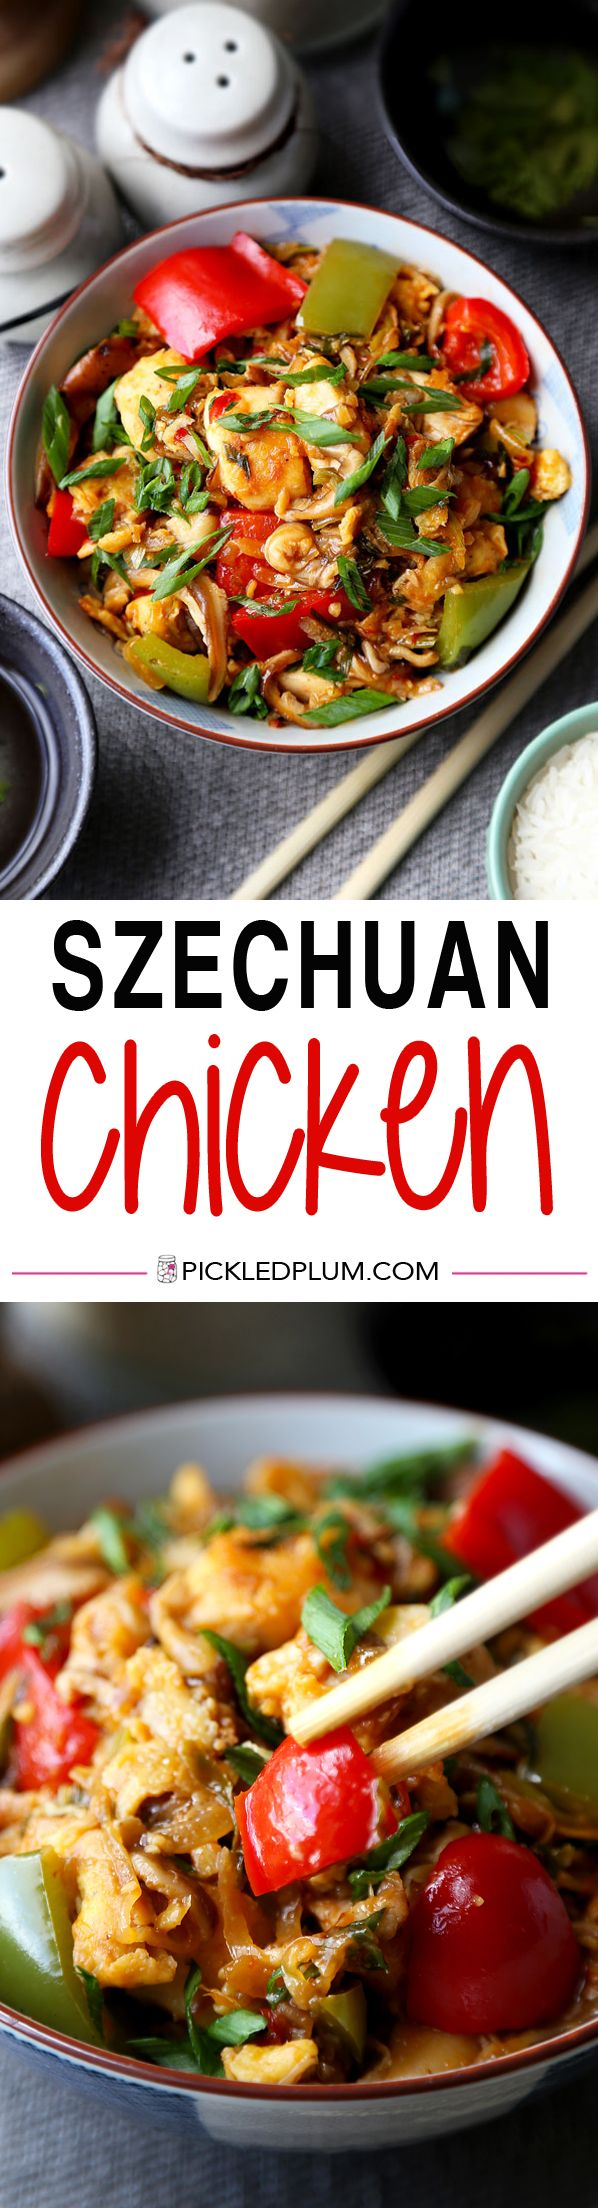 Spicy, healthy and easy Szechuan Chicken Stir Fry Recipe - ready in 25 minutes! http://www.pickledplum.com/szechuan-chicken-recipe/